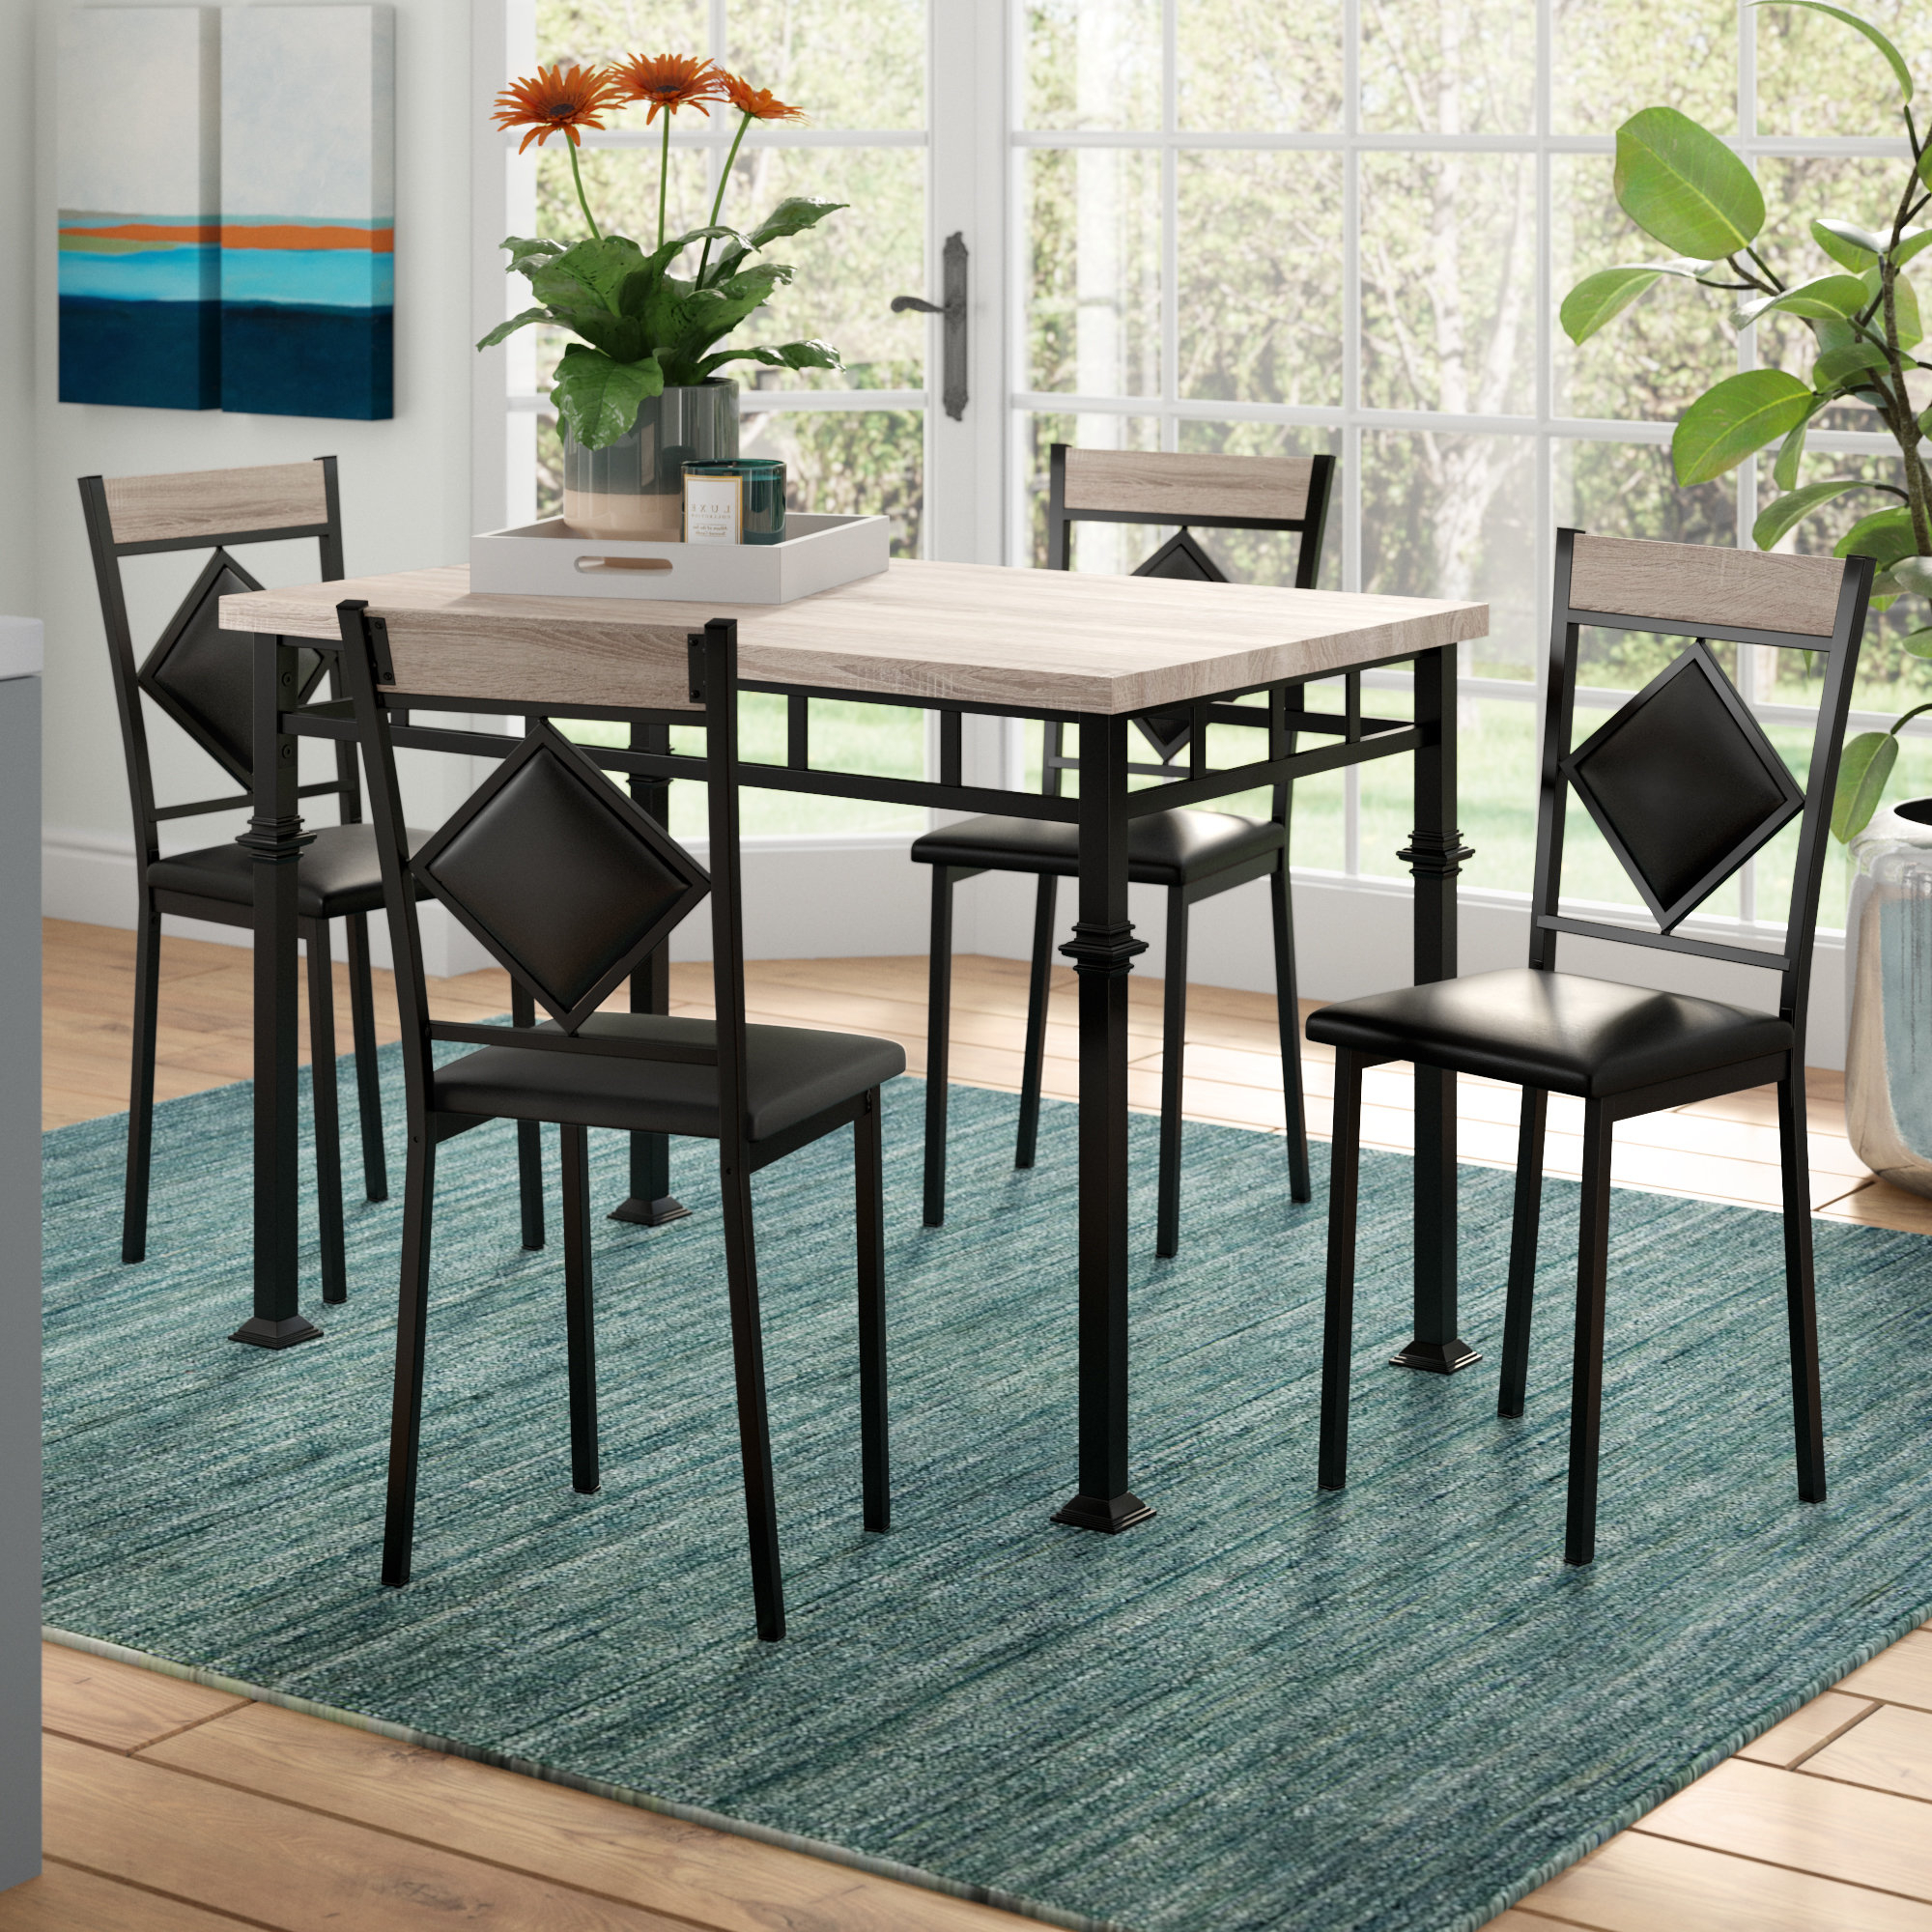 Wayfair Throughout Current Autberry 5 Piece Dining Sets (View 21 of 25)